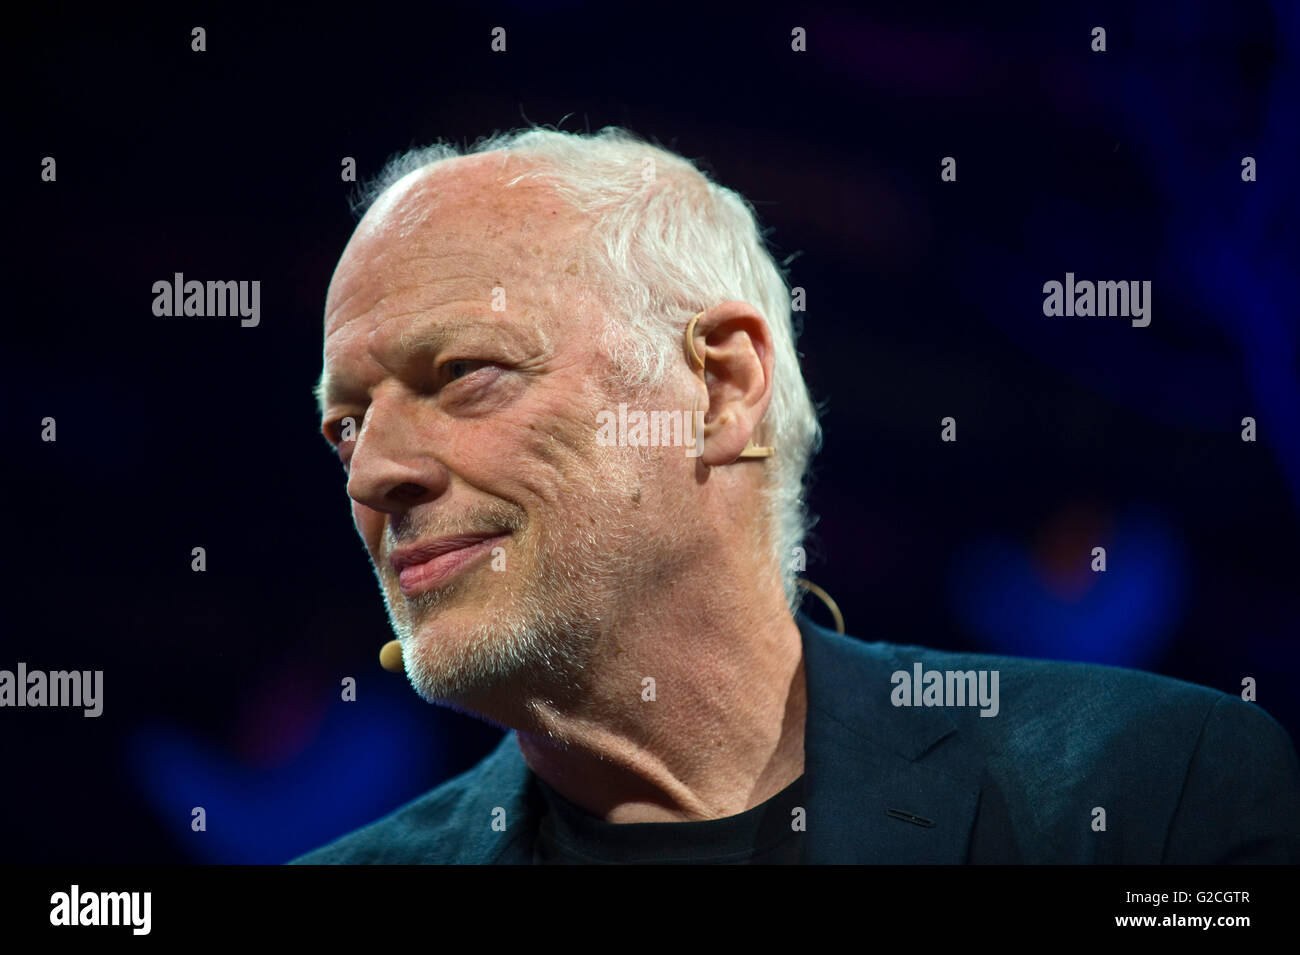 David Gilmour, Pink Floyd guitarist talking about his life & work on stage at Hay Festival 2016 - Stock Image